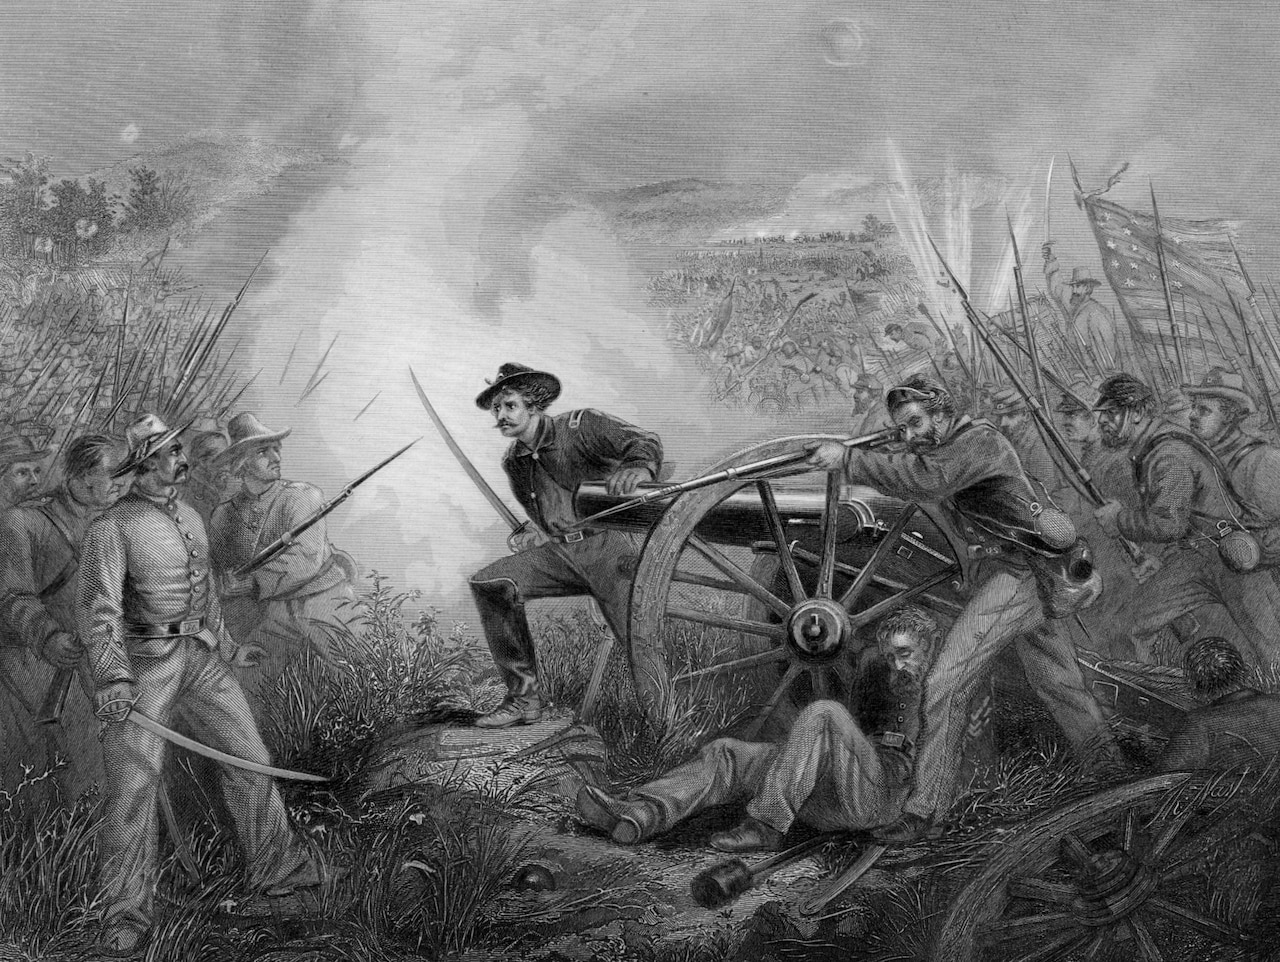 A drawing depicts enemy soldiers with swords and bayonets in a field.